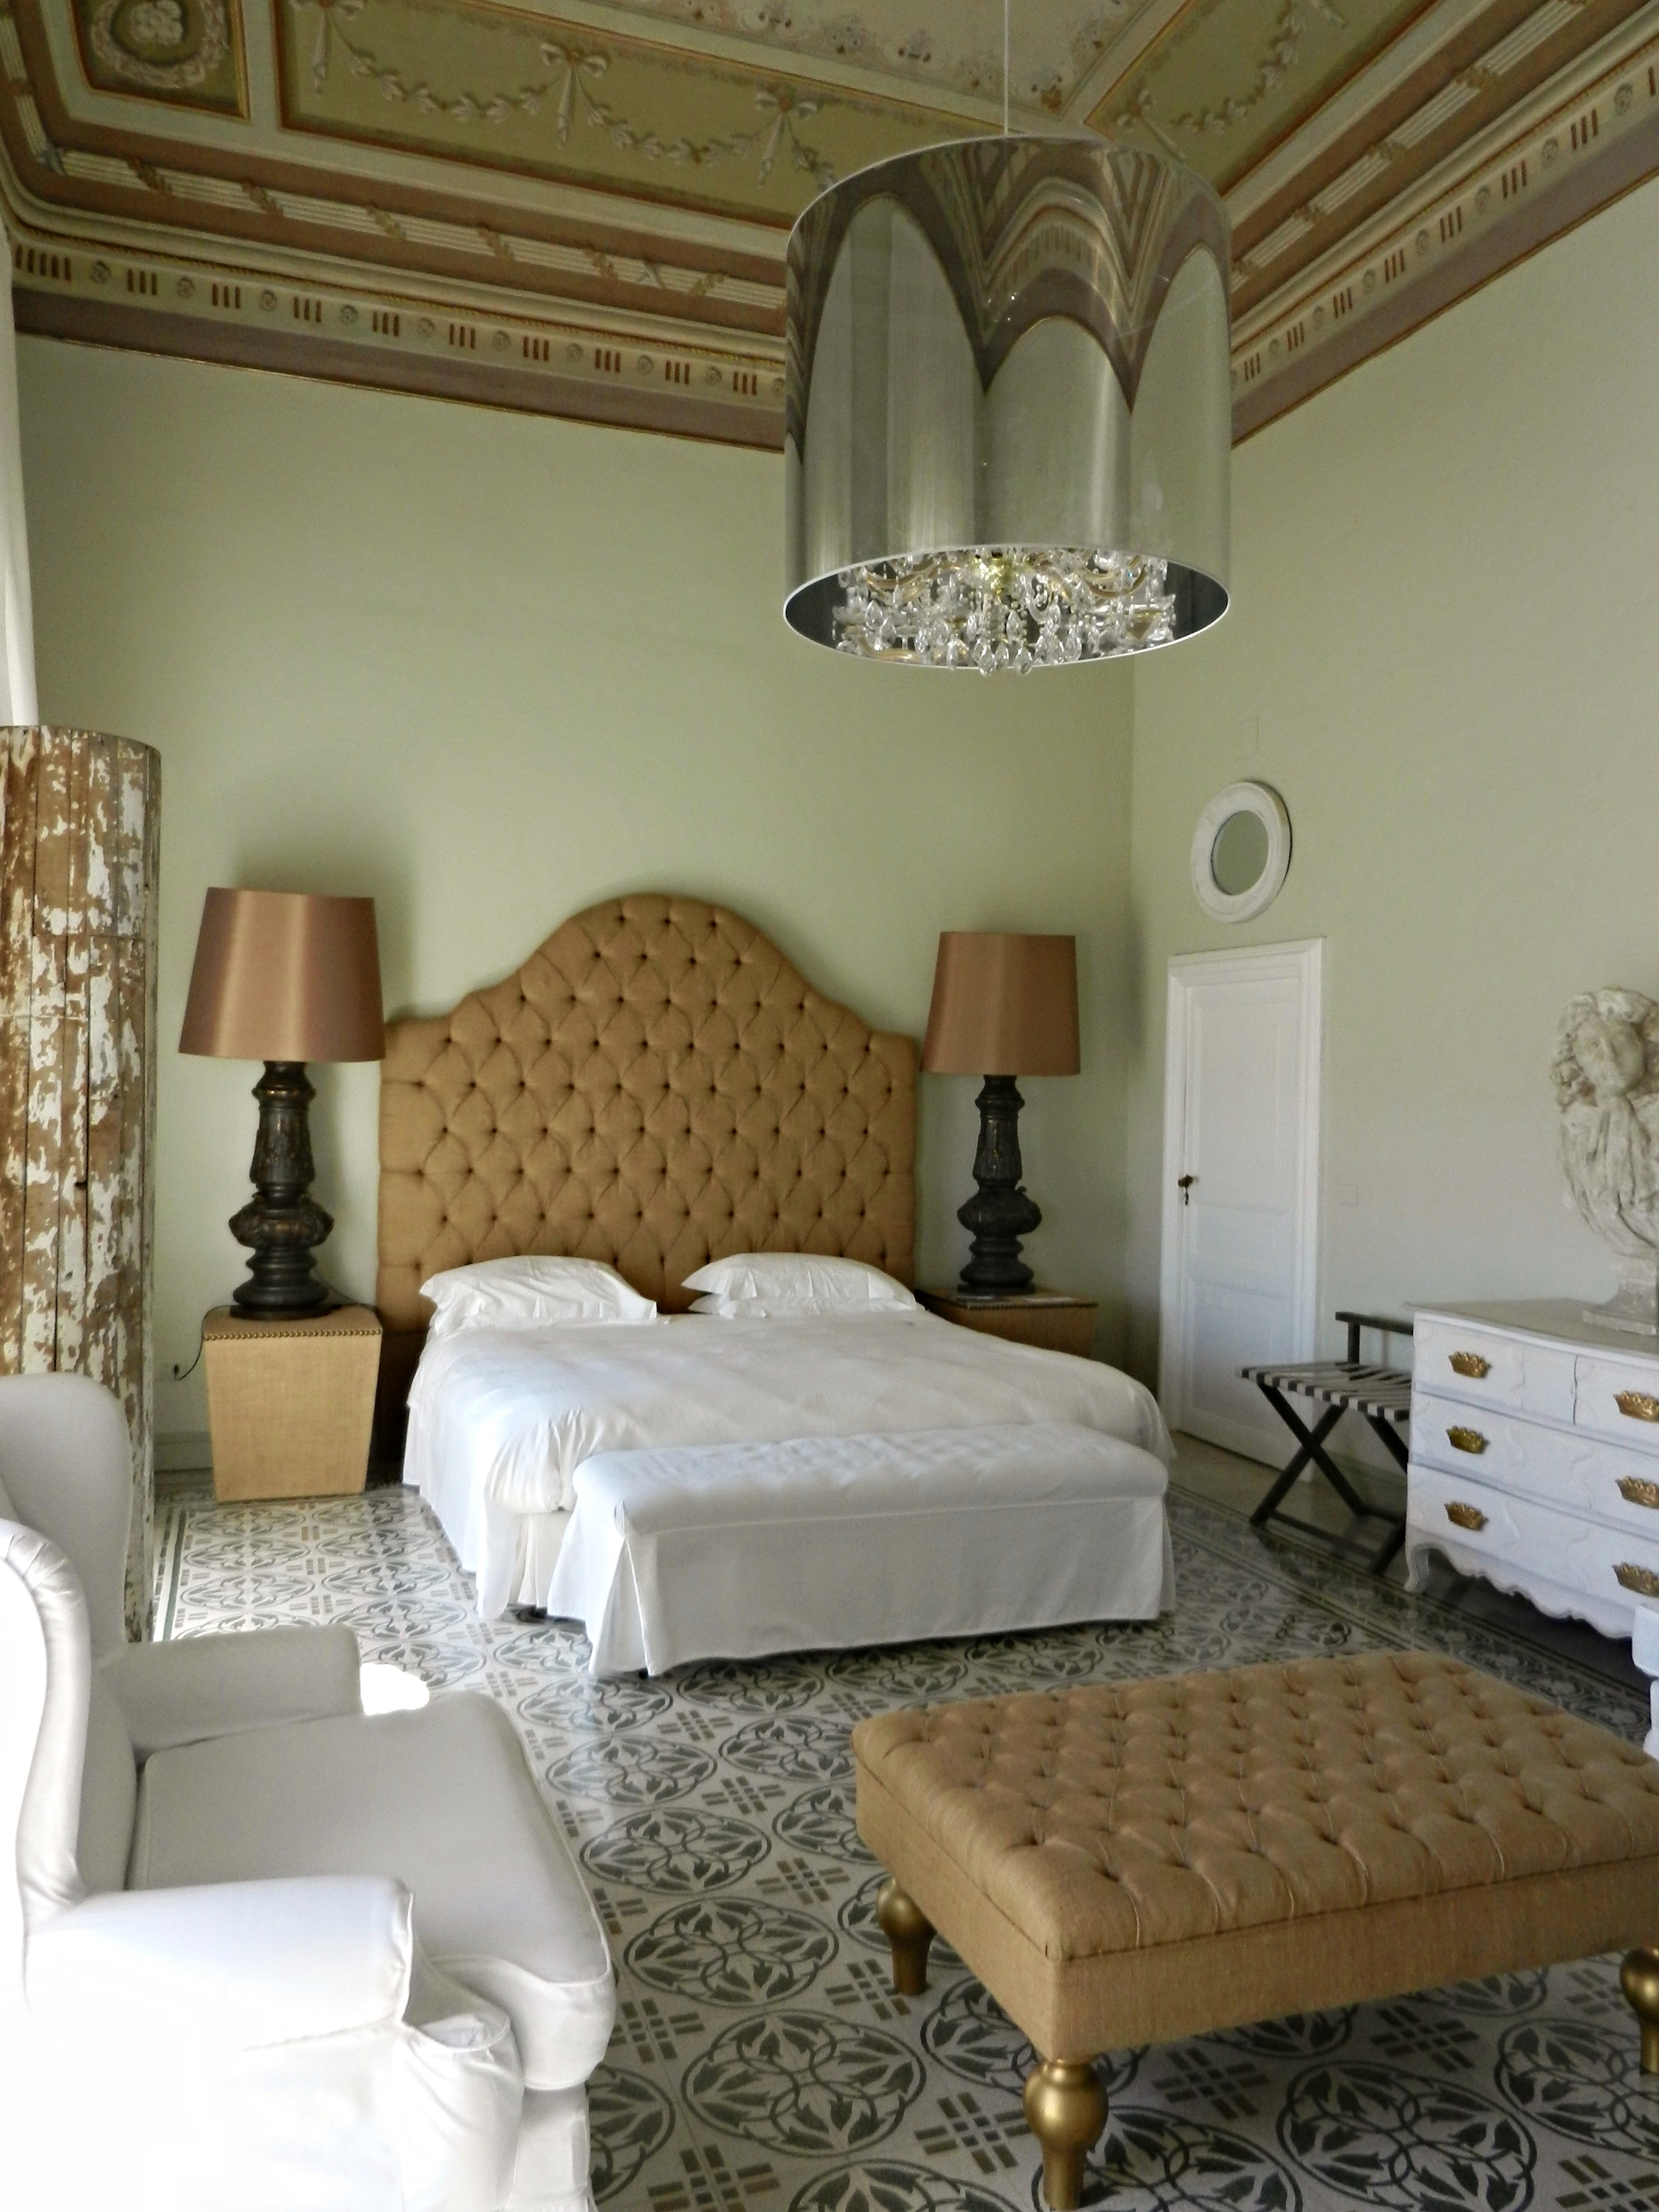 The former bedroom of a prince, at the Villadorata 7 Rooms, Noto, Sicily